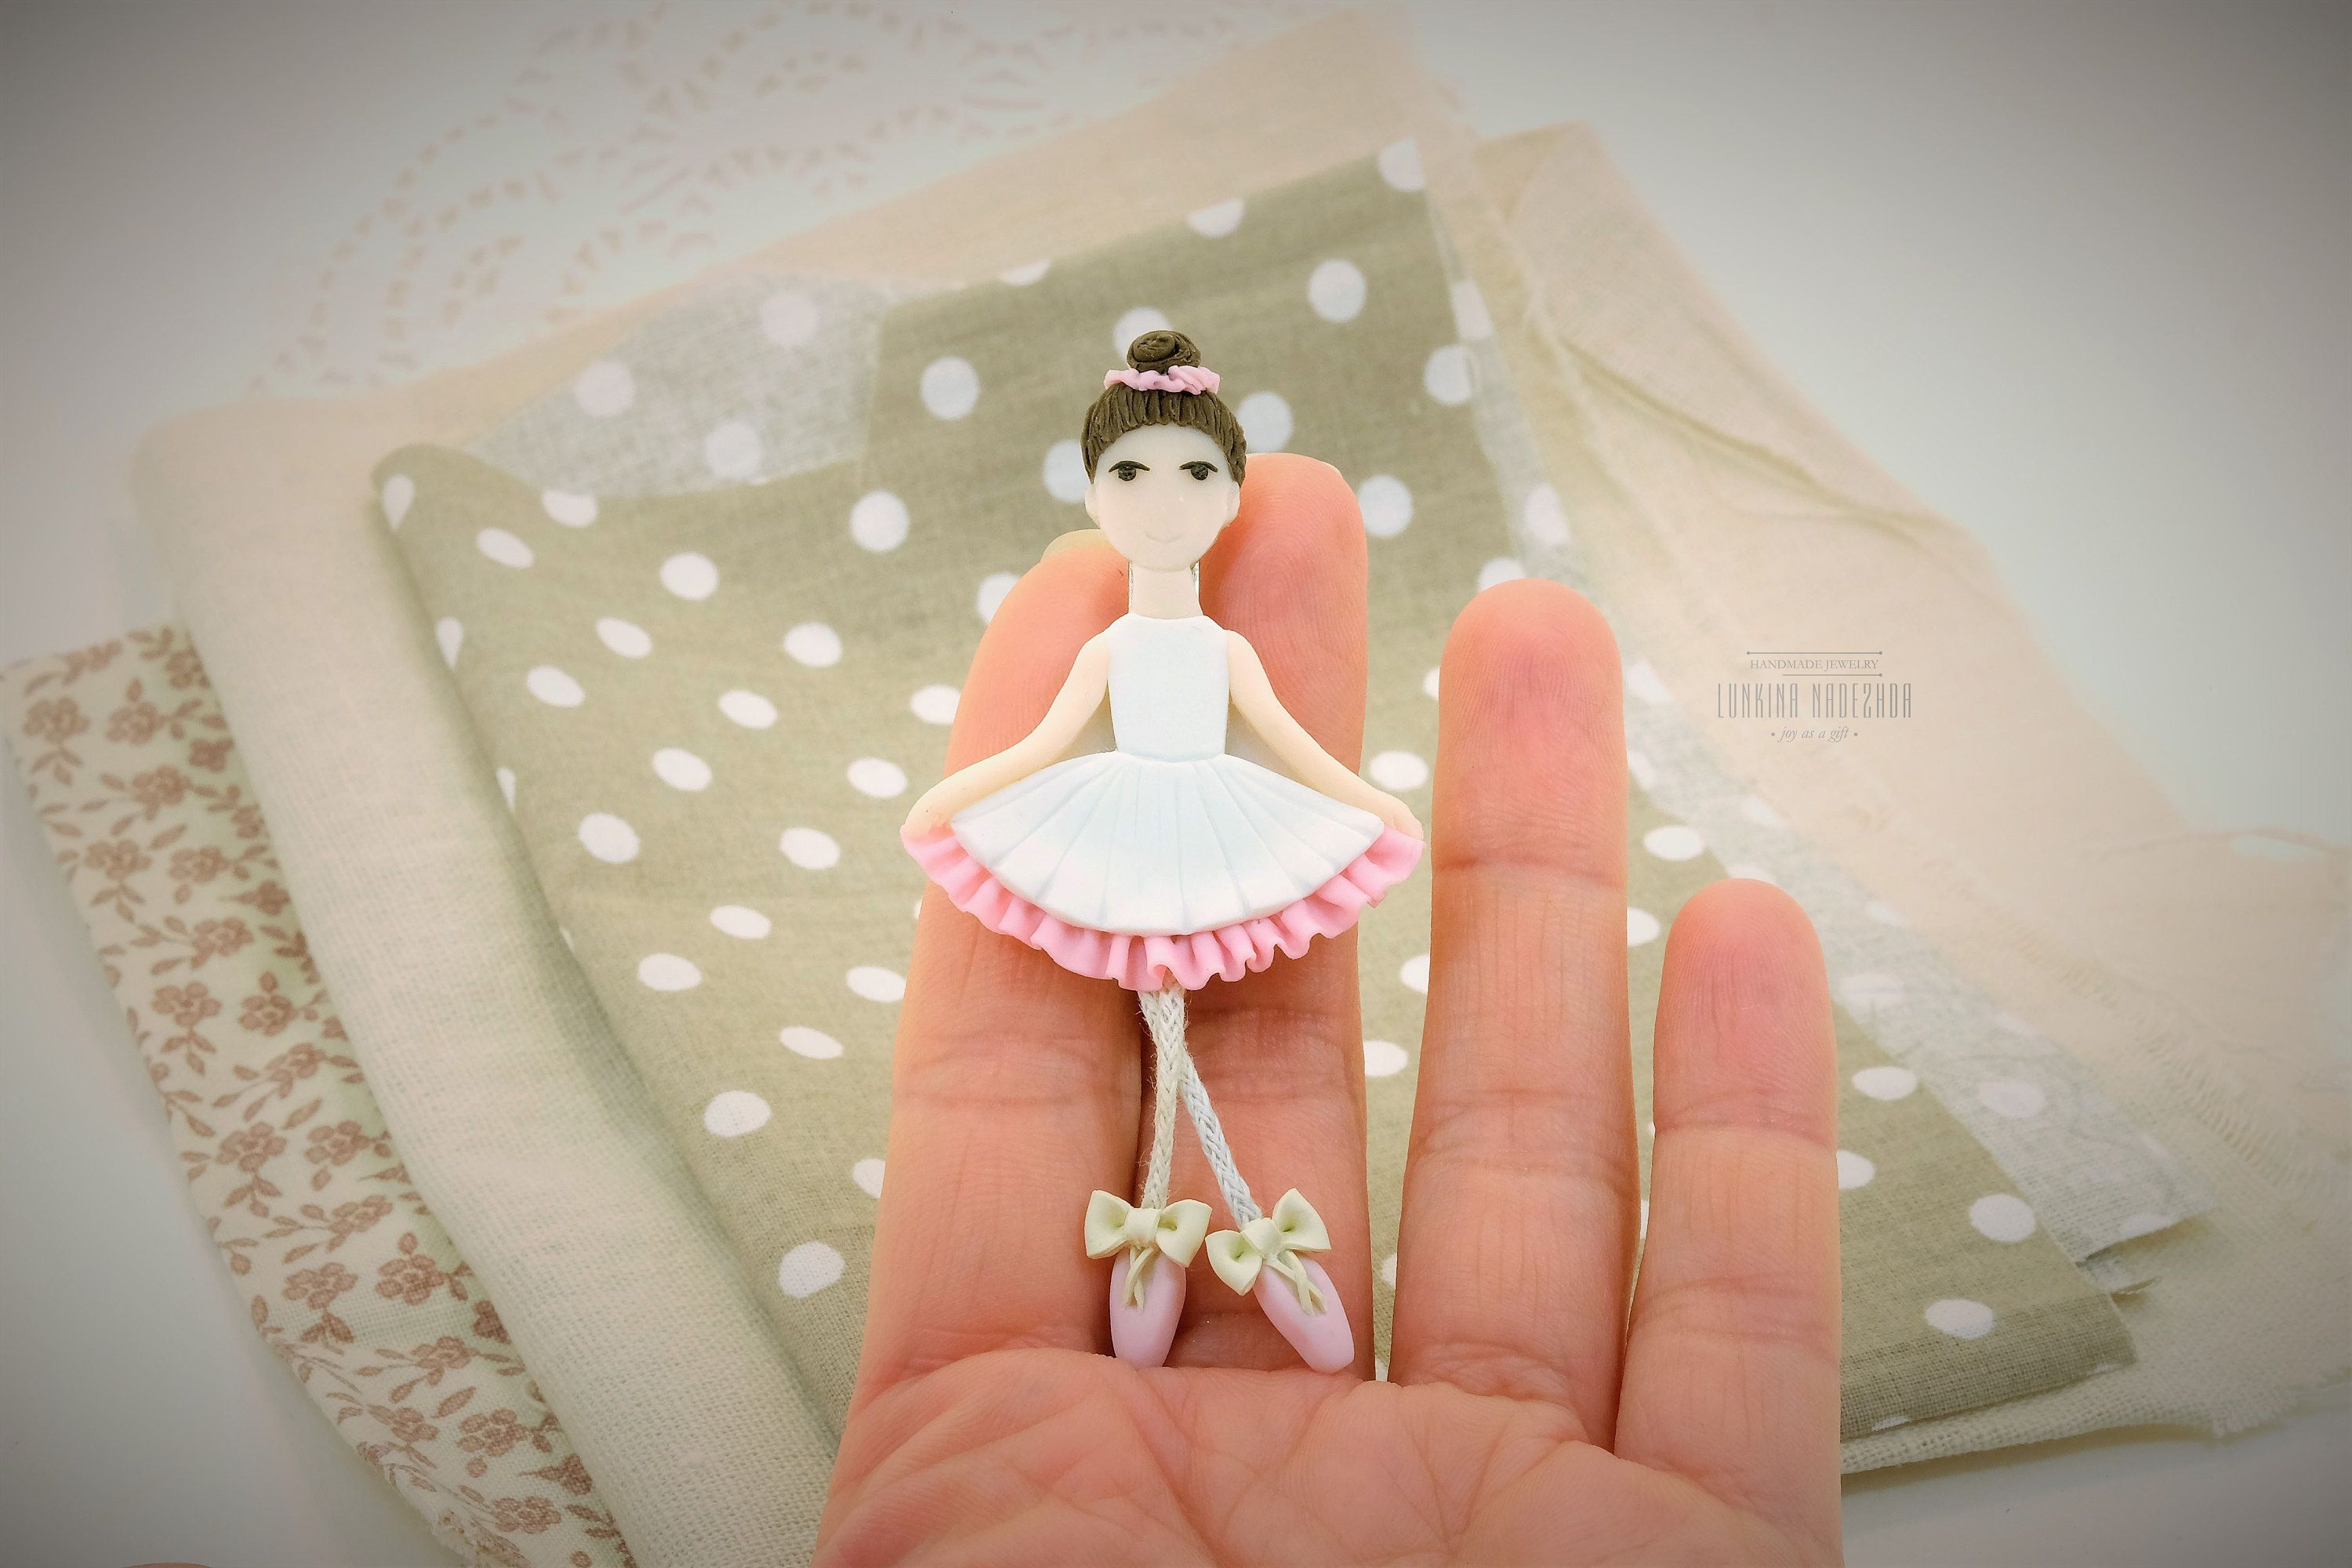 Ballerina Ballet Dancer Pin